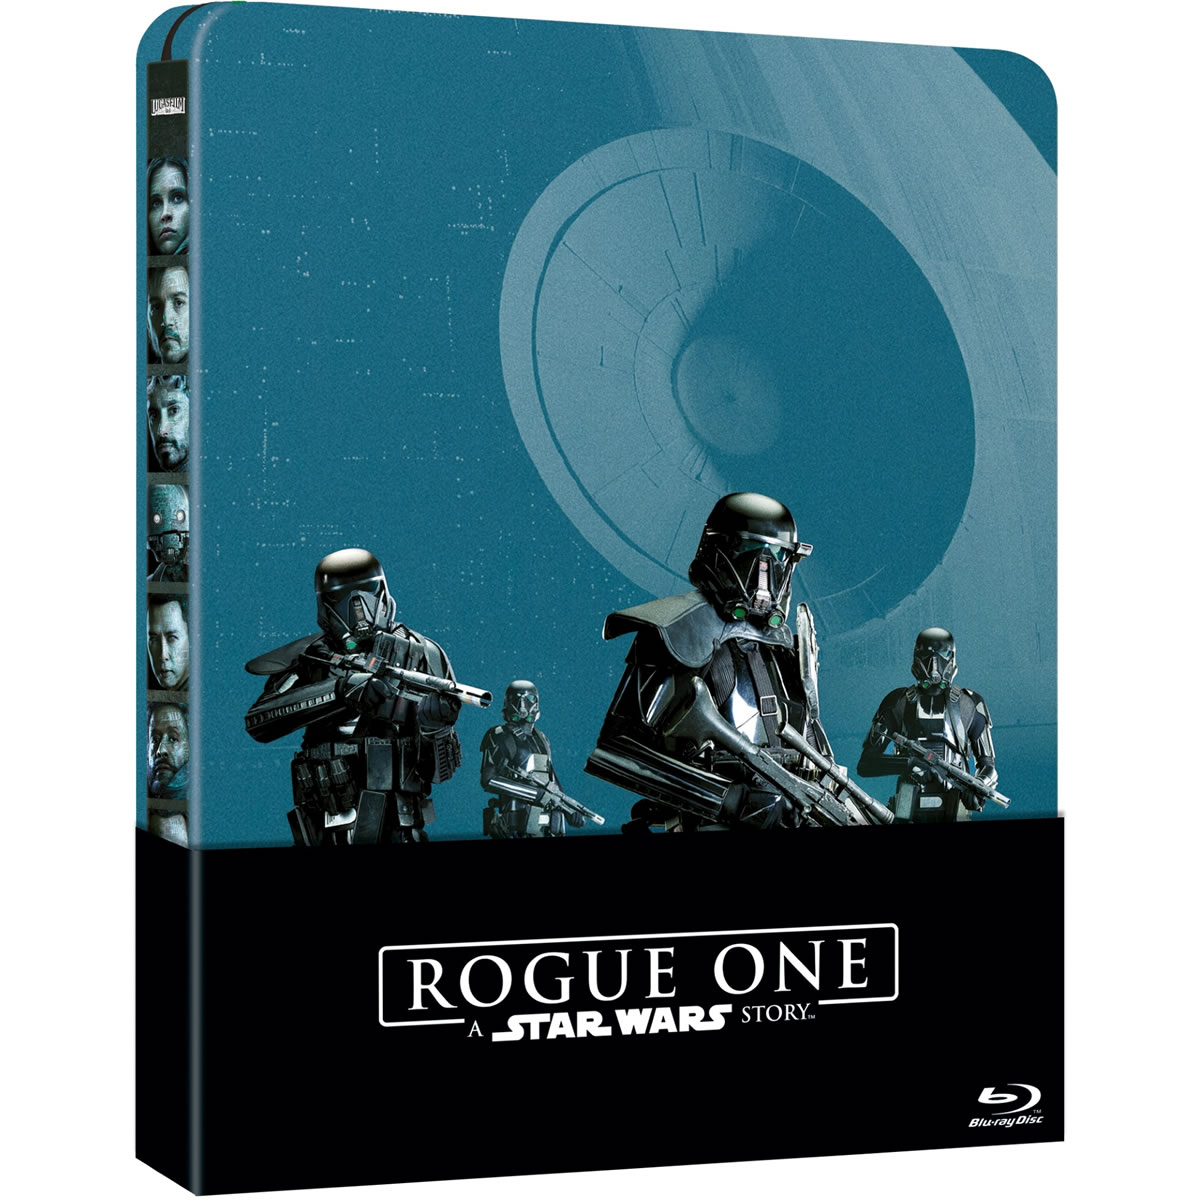 ROGUE ONE: A STAR WARS STORY - Limited Edition Steelbook [ΕΛΛΗΝΙΚΟ] (2 BLU-RAY) + ΔΩΡΟ ΠΡΟΣΤΑΤΕΥΤΙΚΗ ΘΗΚΗ Steelbook